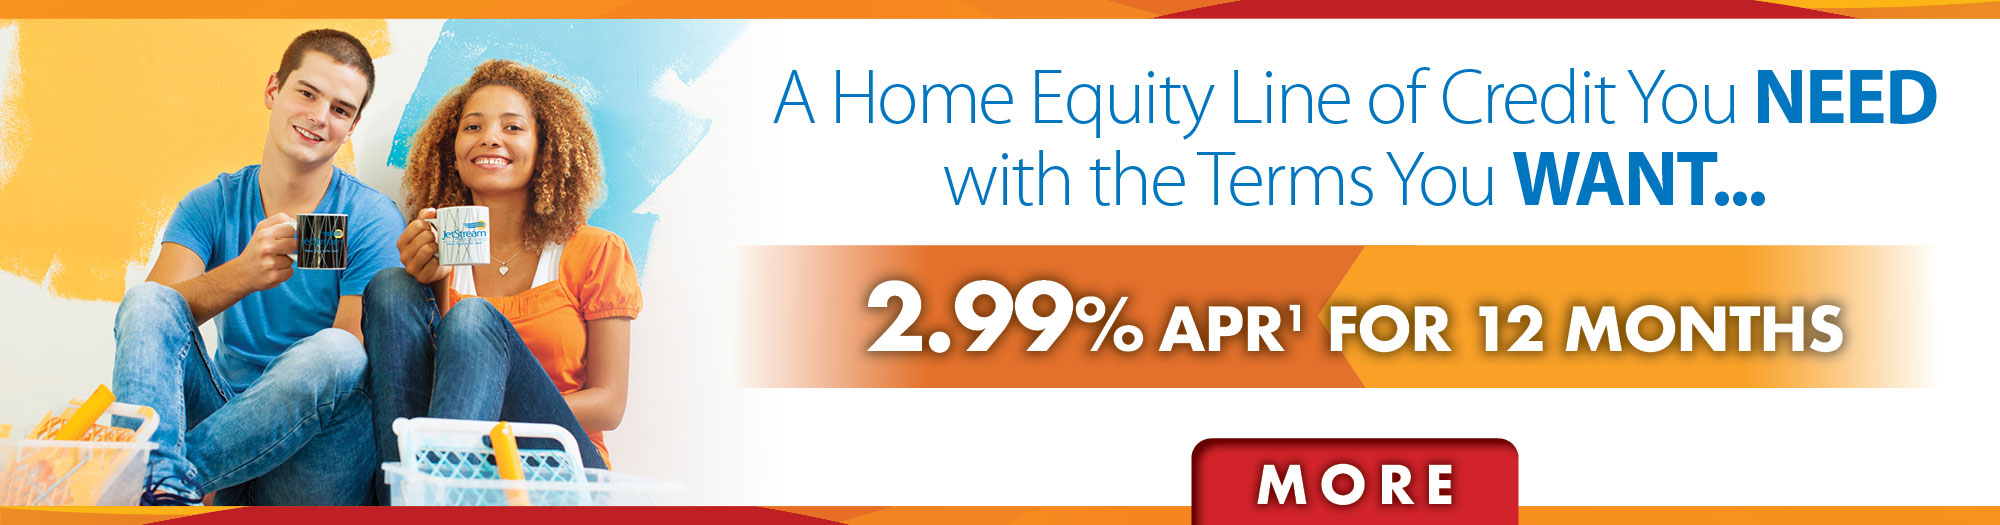 A home equity line of credit you need with the terms you want. 2.99% APR for 12 months